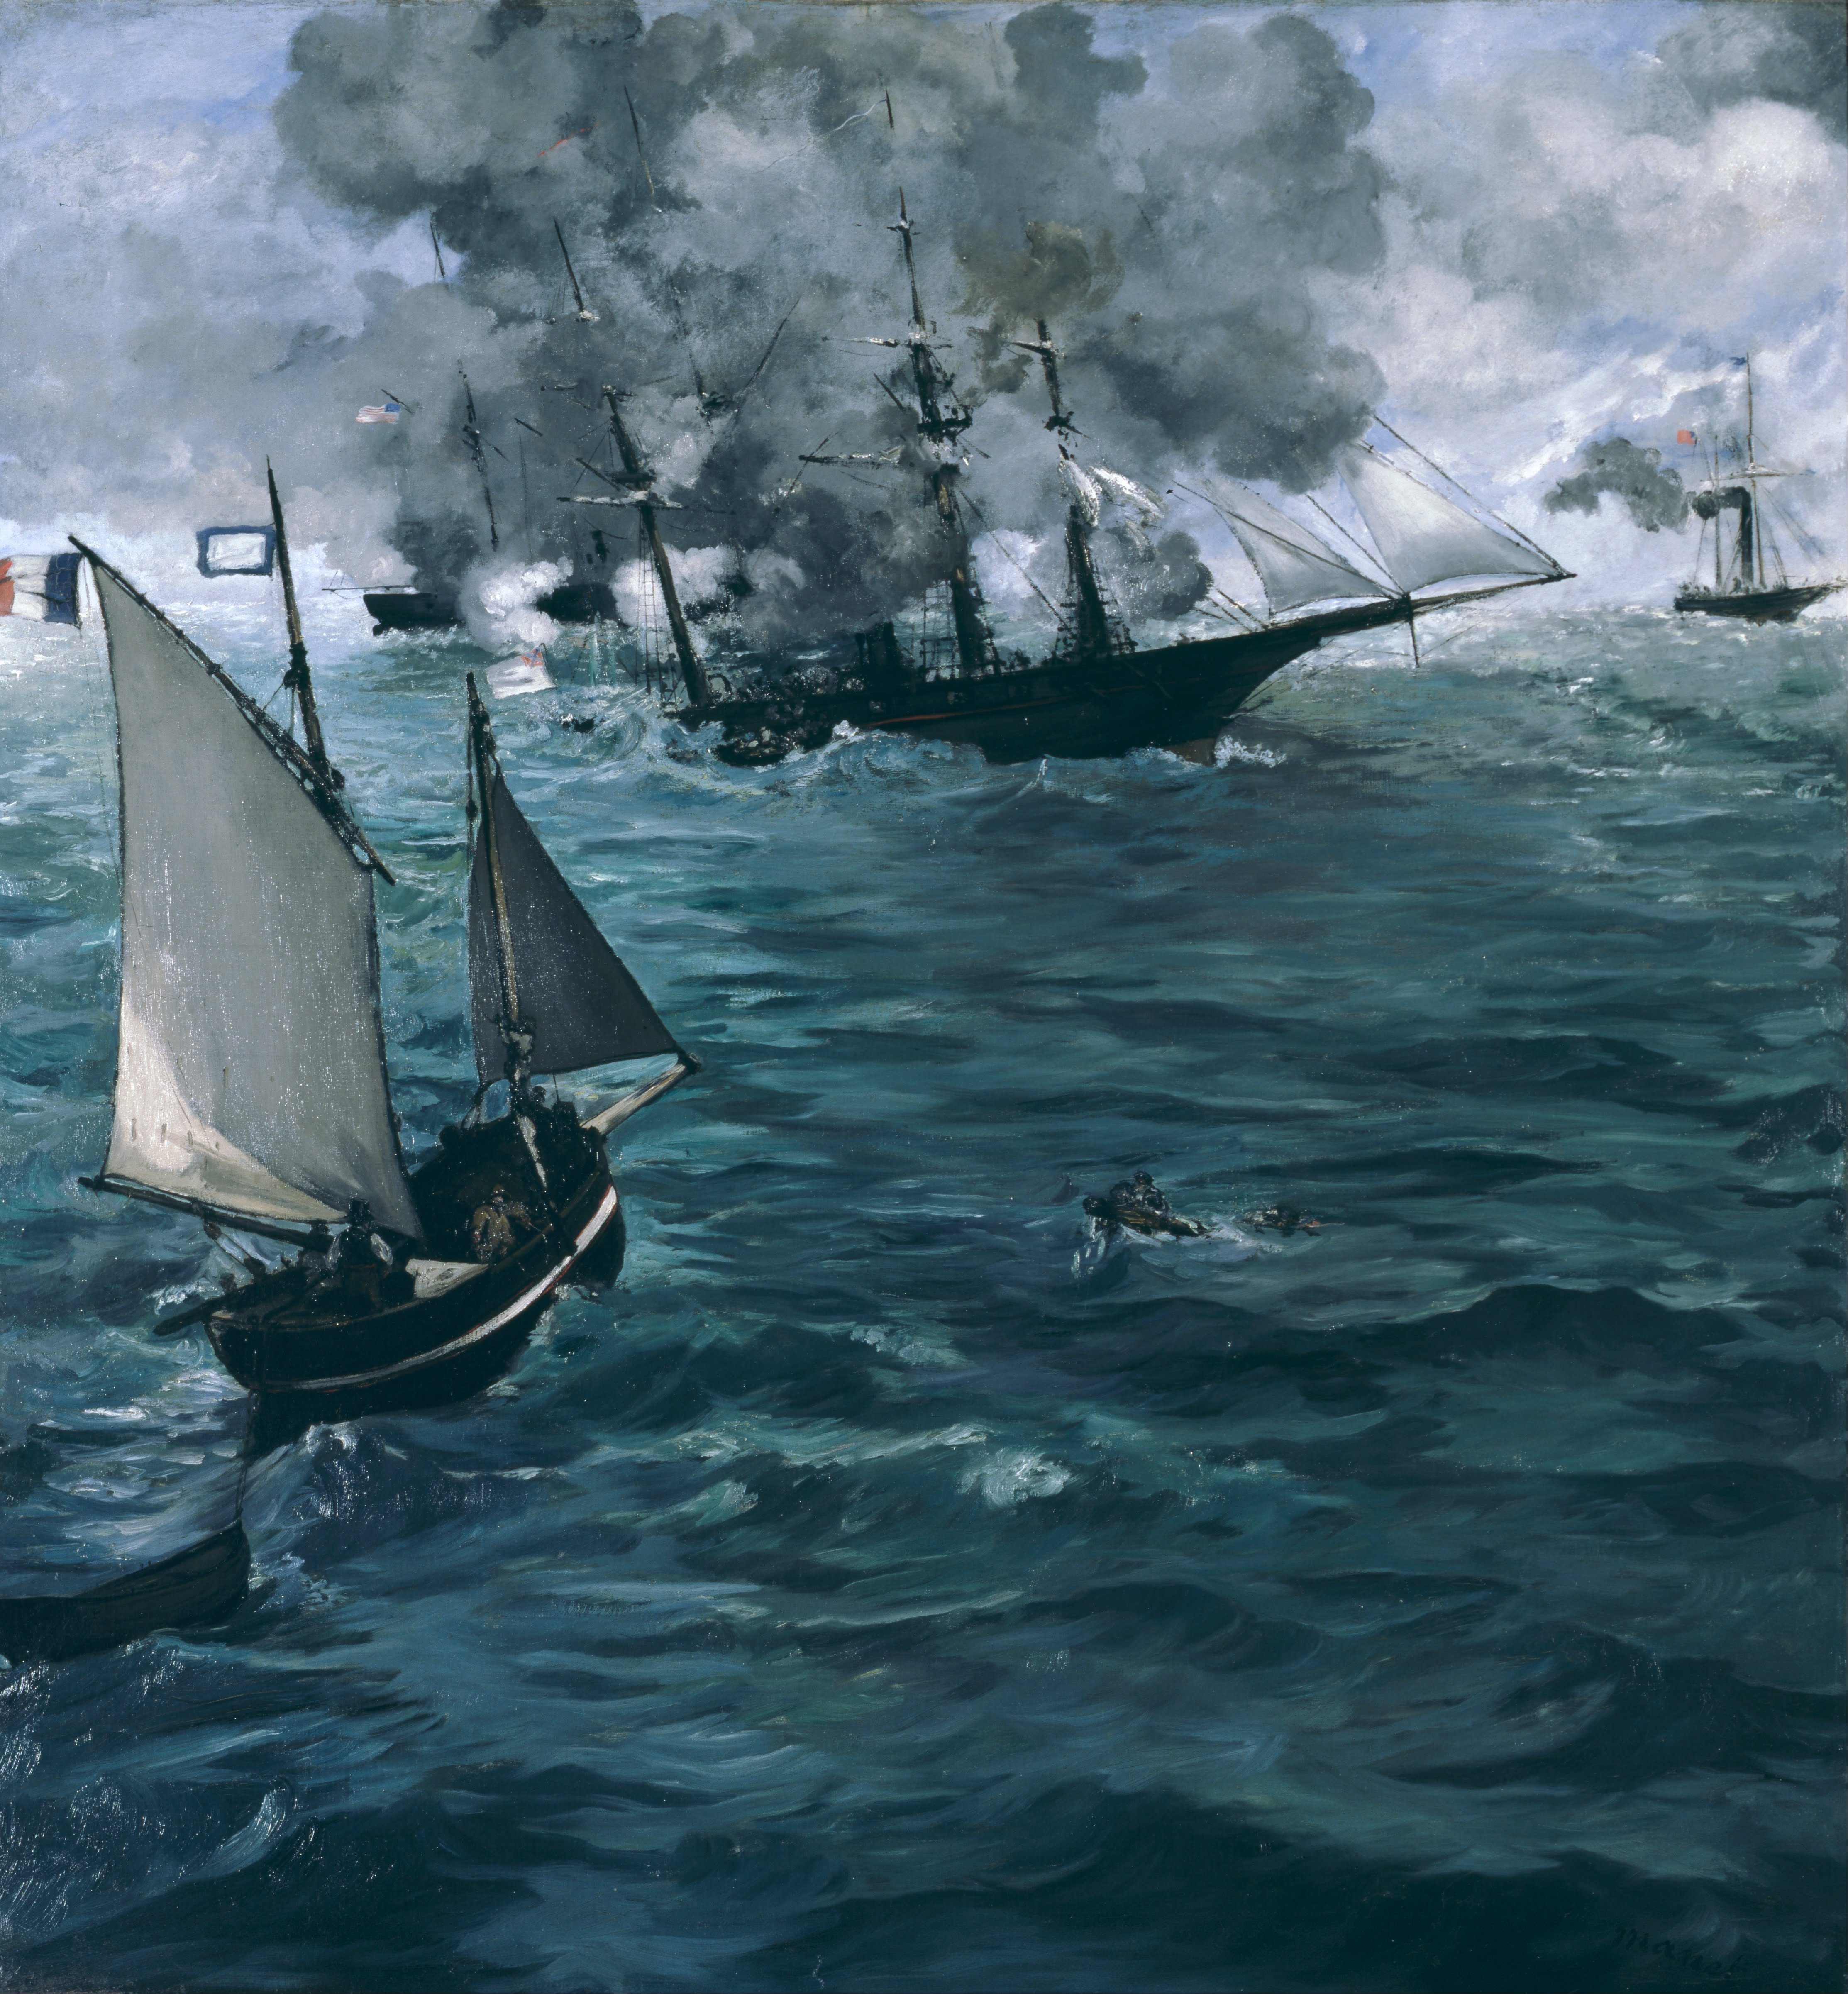 https://upload.wikimedia.org/wikipedia/commons/6/65/%C3%89douard_Manet,_French_-_The_Battle_of_the_U.S.S._%22Kearsarge%22_and_the_C.S.S._%22Alabama%22_-_Google_Art_Project.jpg